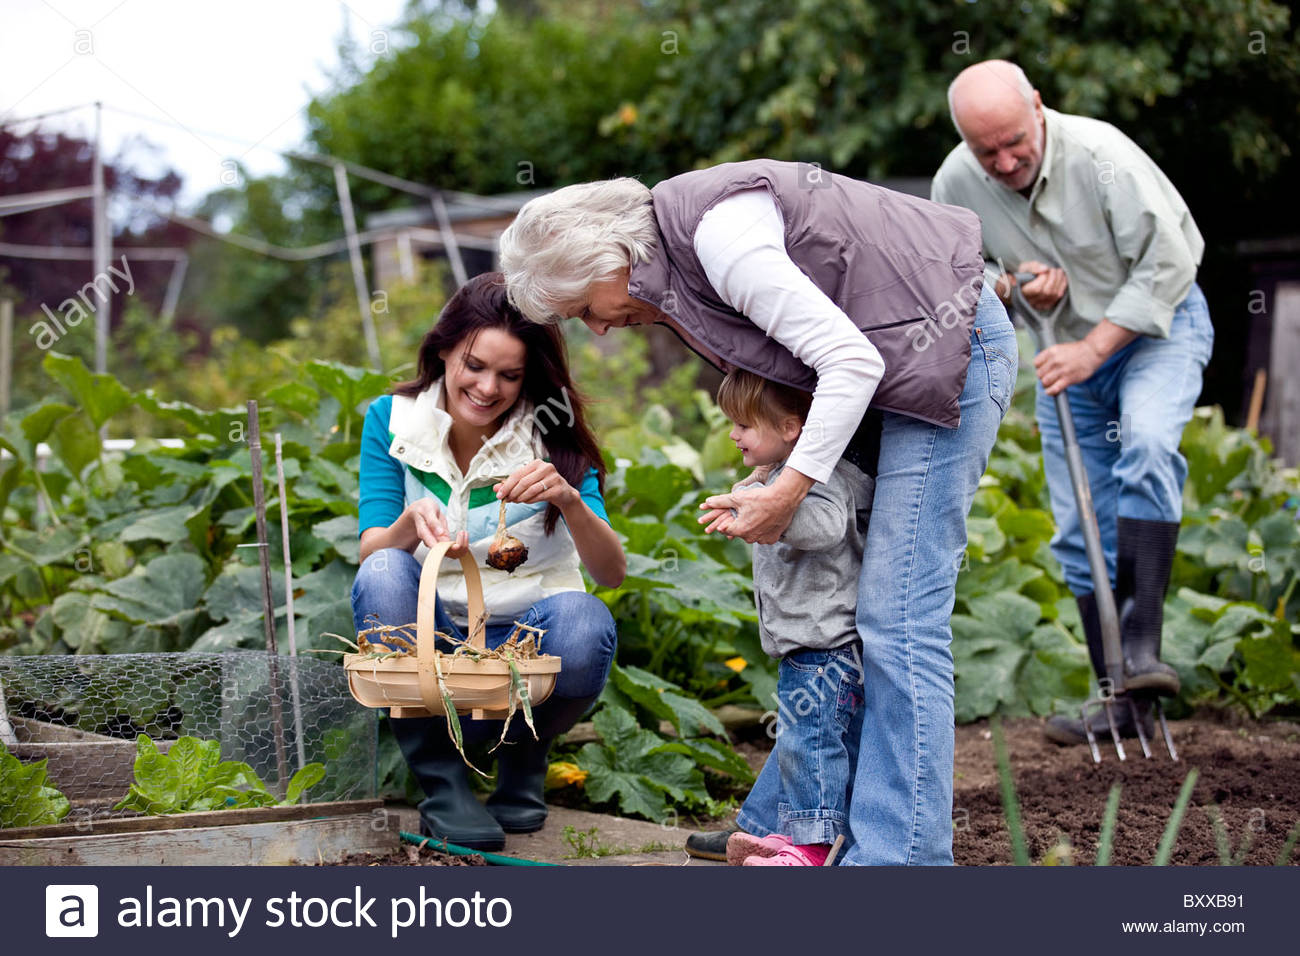 A family working on an allotment together Stock Photo